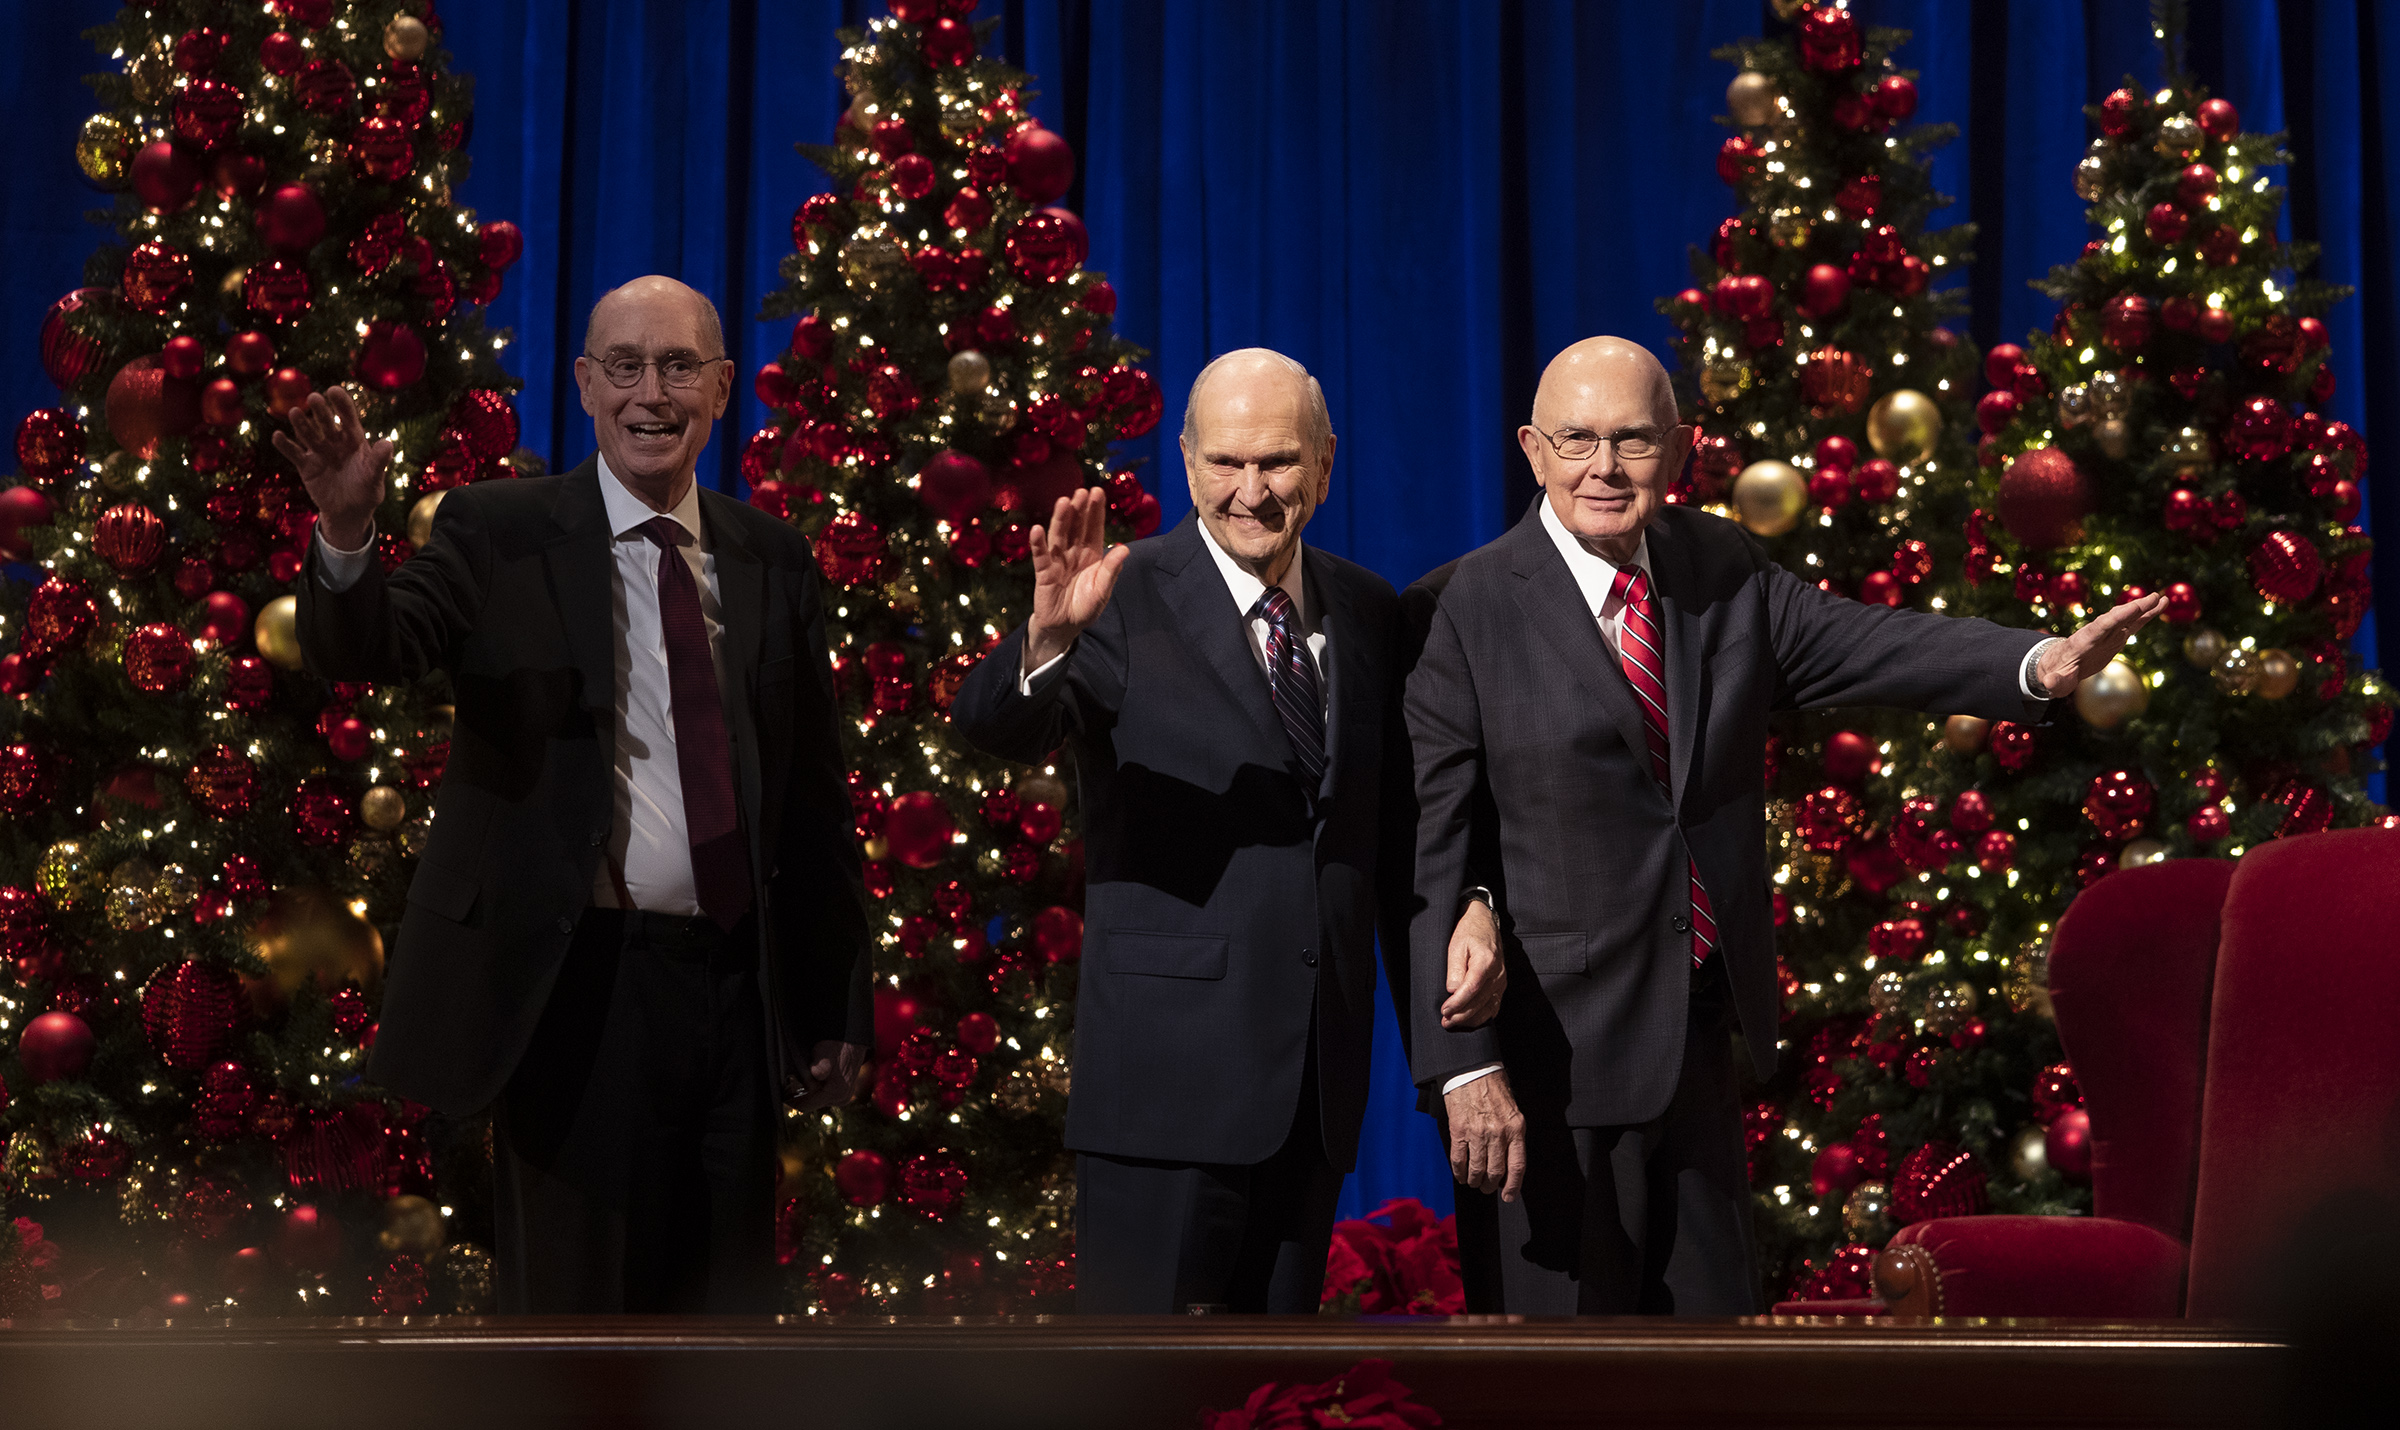 President Henry B. Eyring, second counselor in the First Presidency of The Church of Jesus Christ of Latter-day Saints, President Russell M. Nelson and President Dallin H. Oaks, first counselor in the First Presidency, wave as they leave the First Presidency Christmas Devotional at the Conference Center in Salt Lake City on Sunday, Dec. 8, 2019.